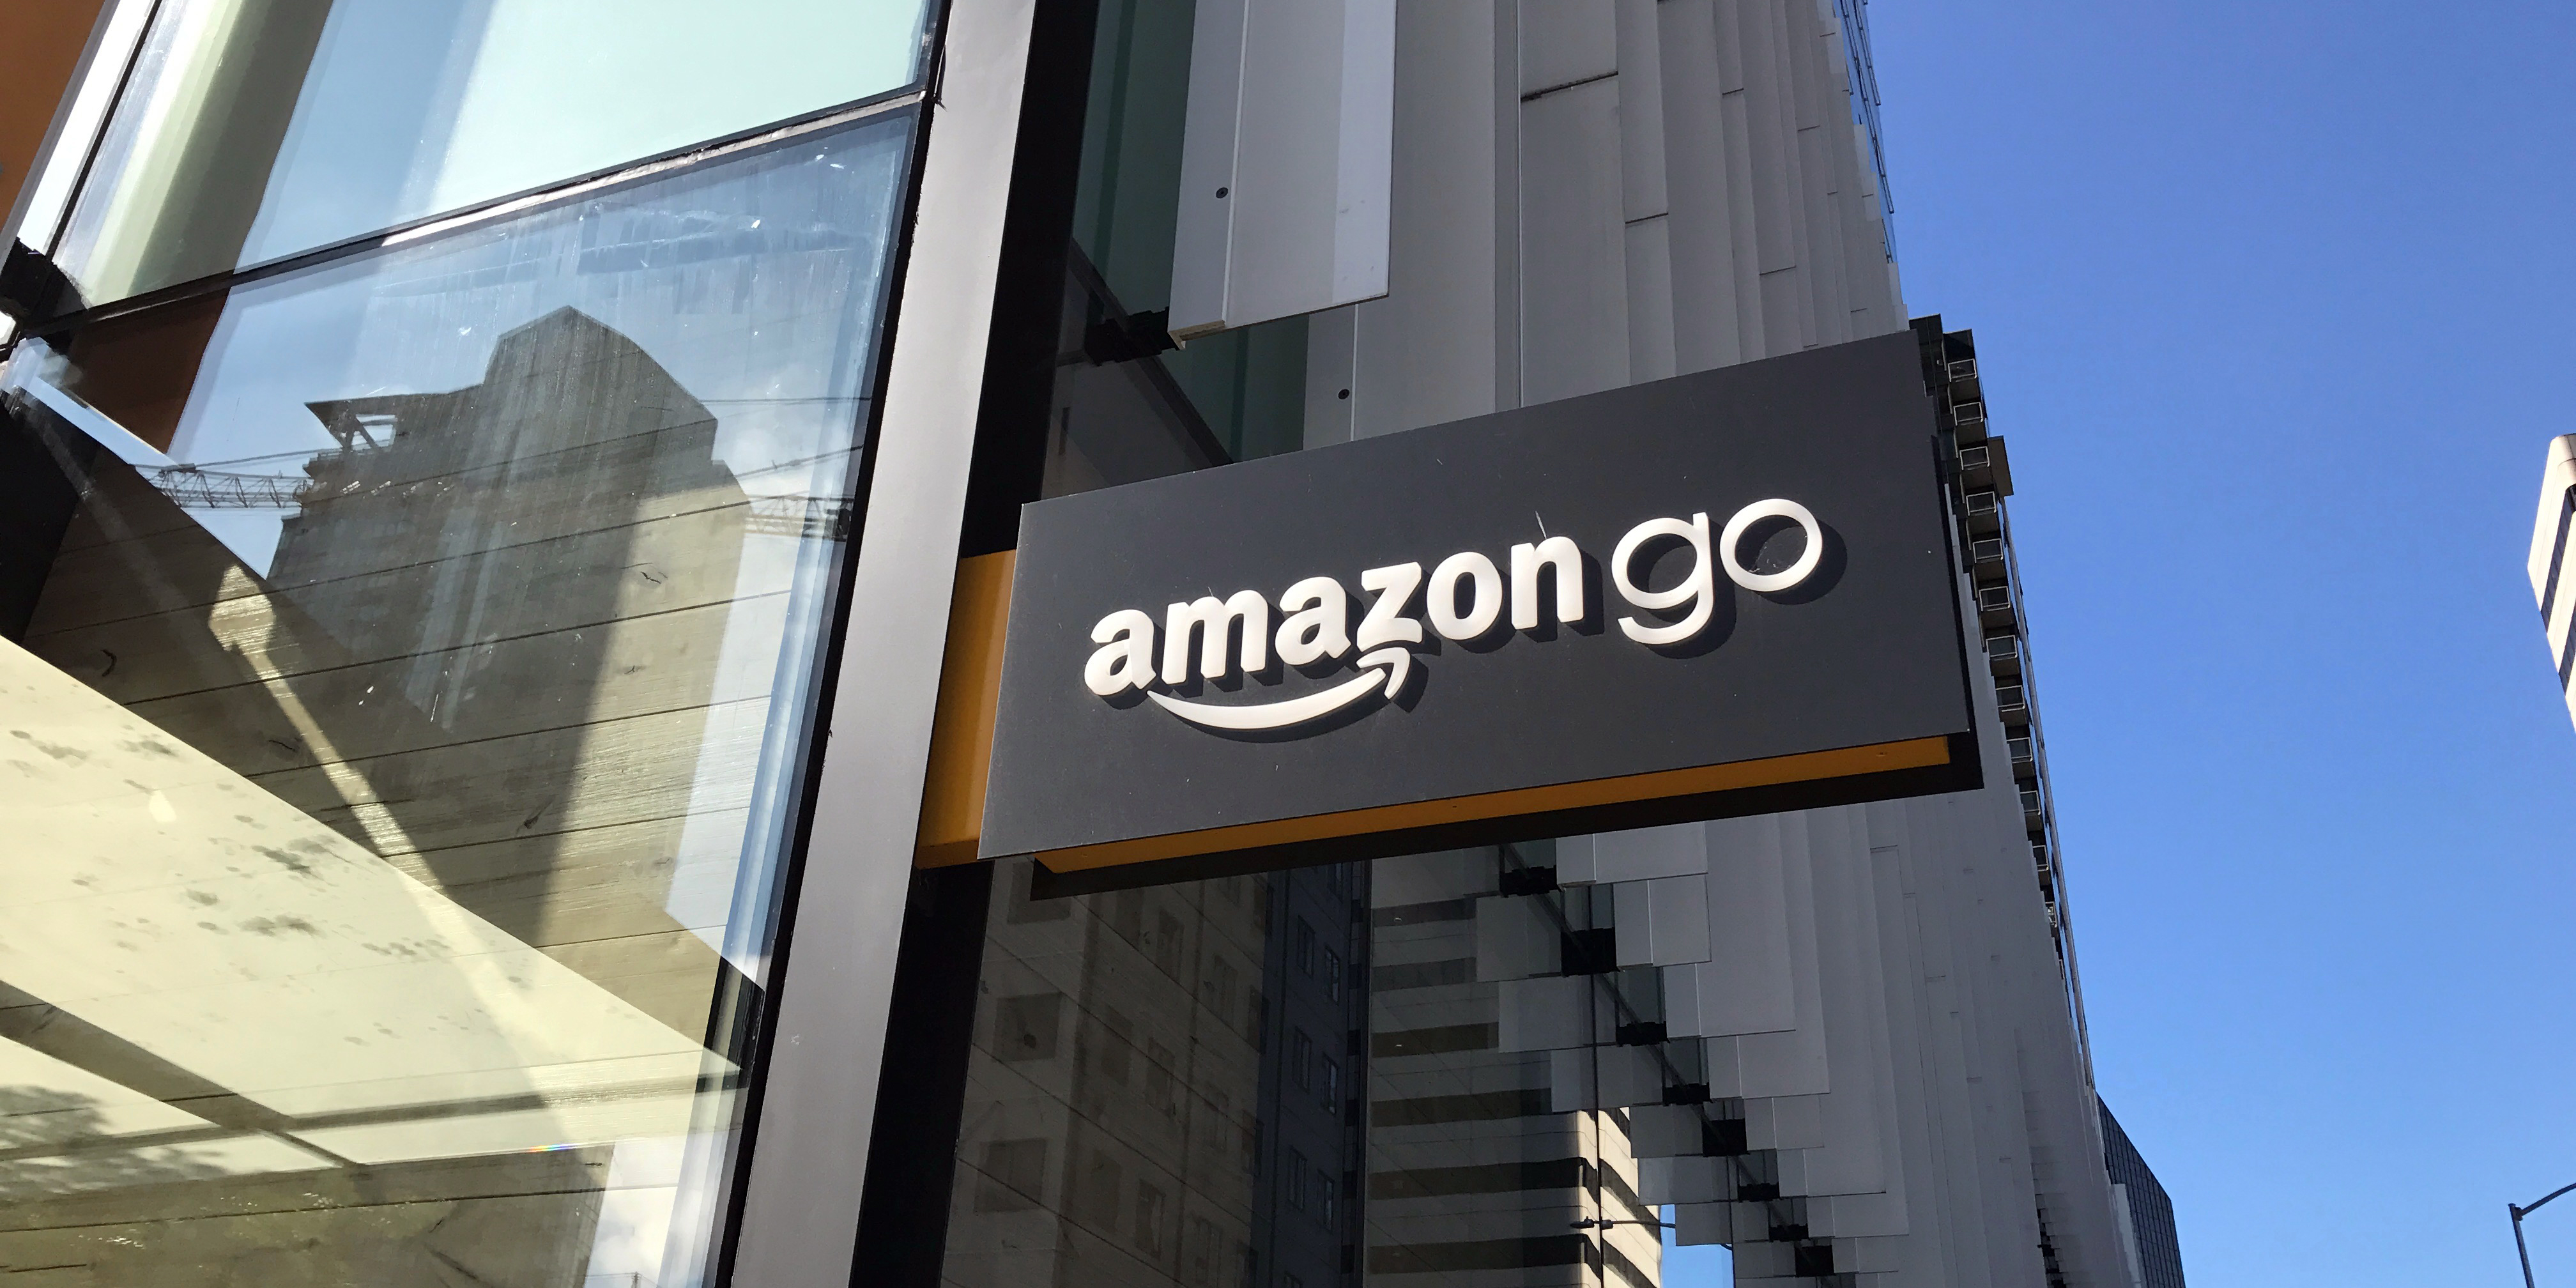 Amazon Go appears set to bring autonomous shopping to airports next year, report says